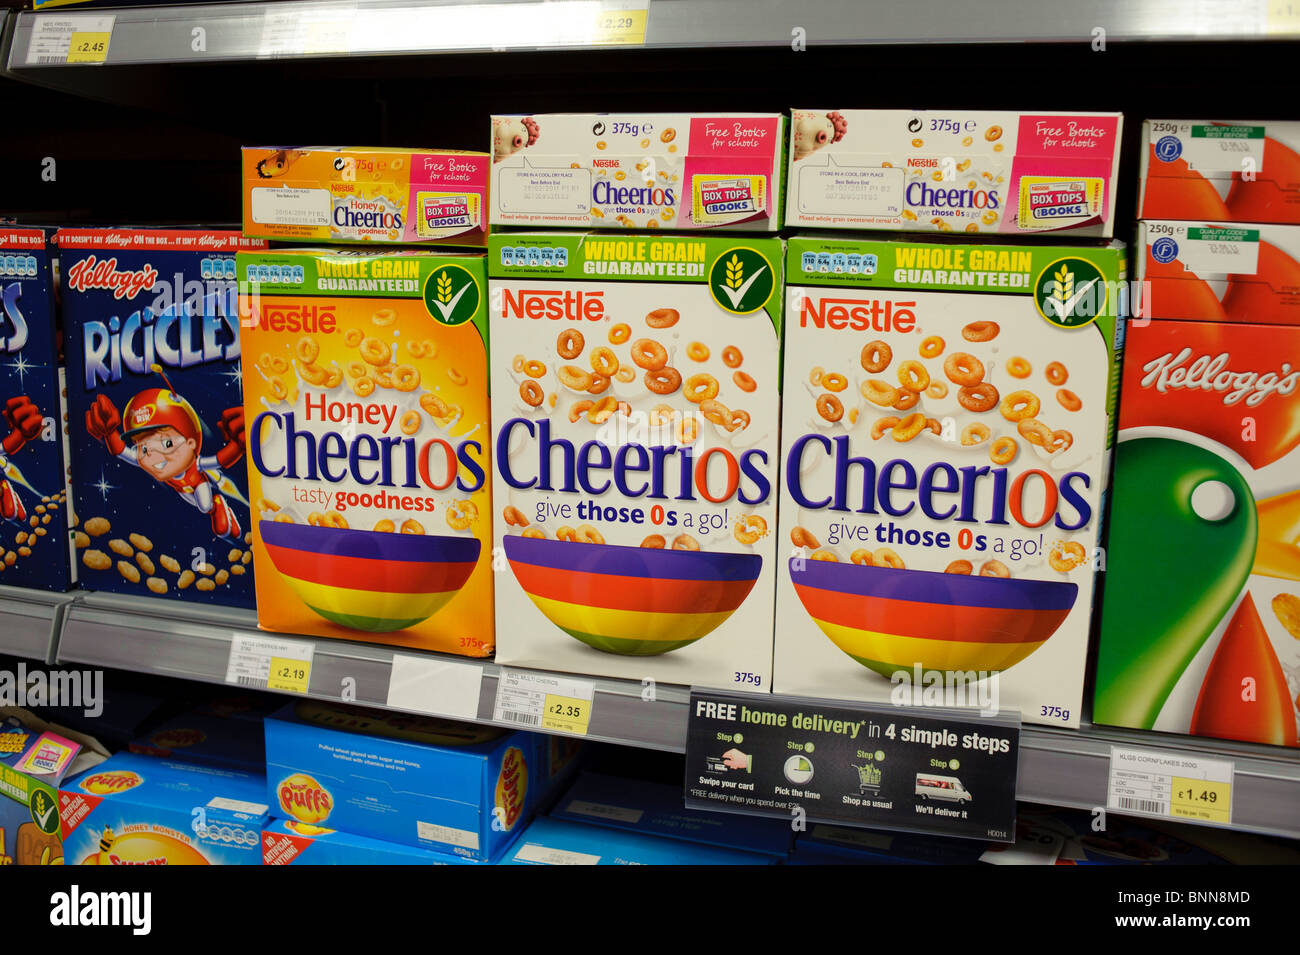 Packets of Nestle Cheerios breakfast cereals on a shelf in Co-Op supermarket, UK - Stock Image